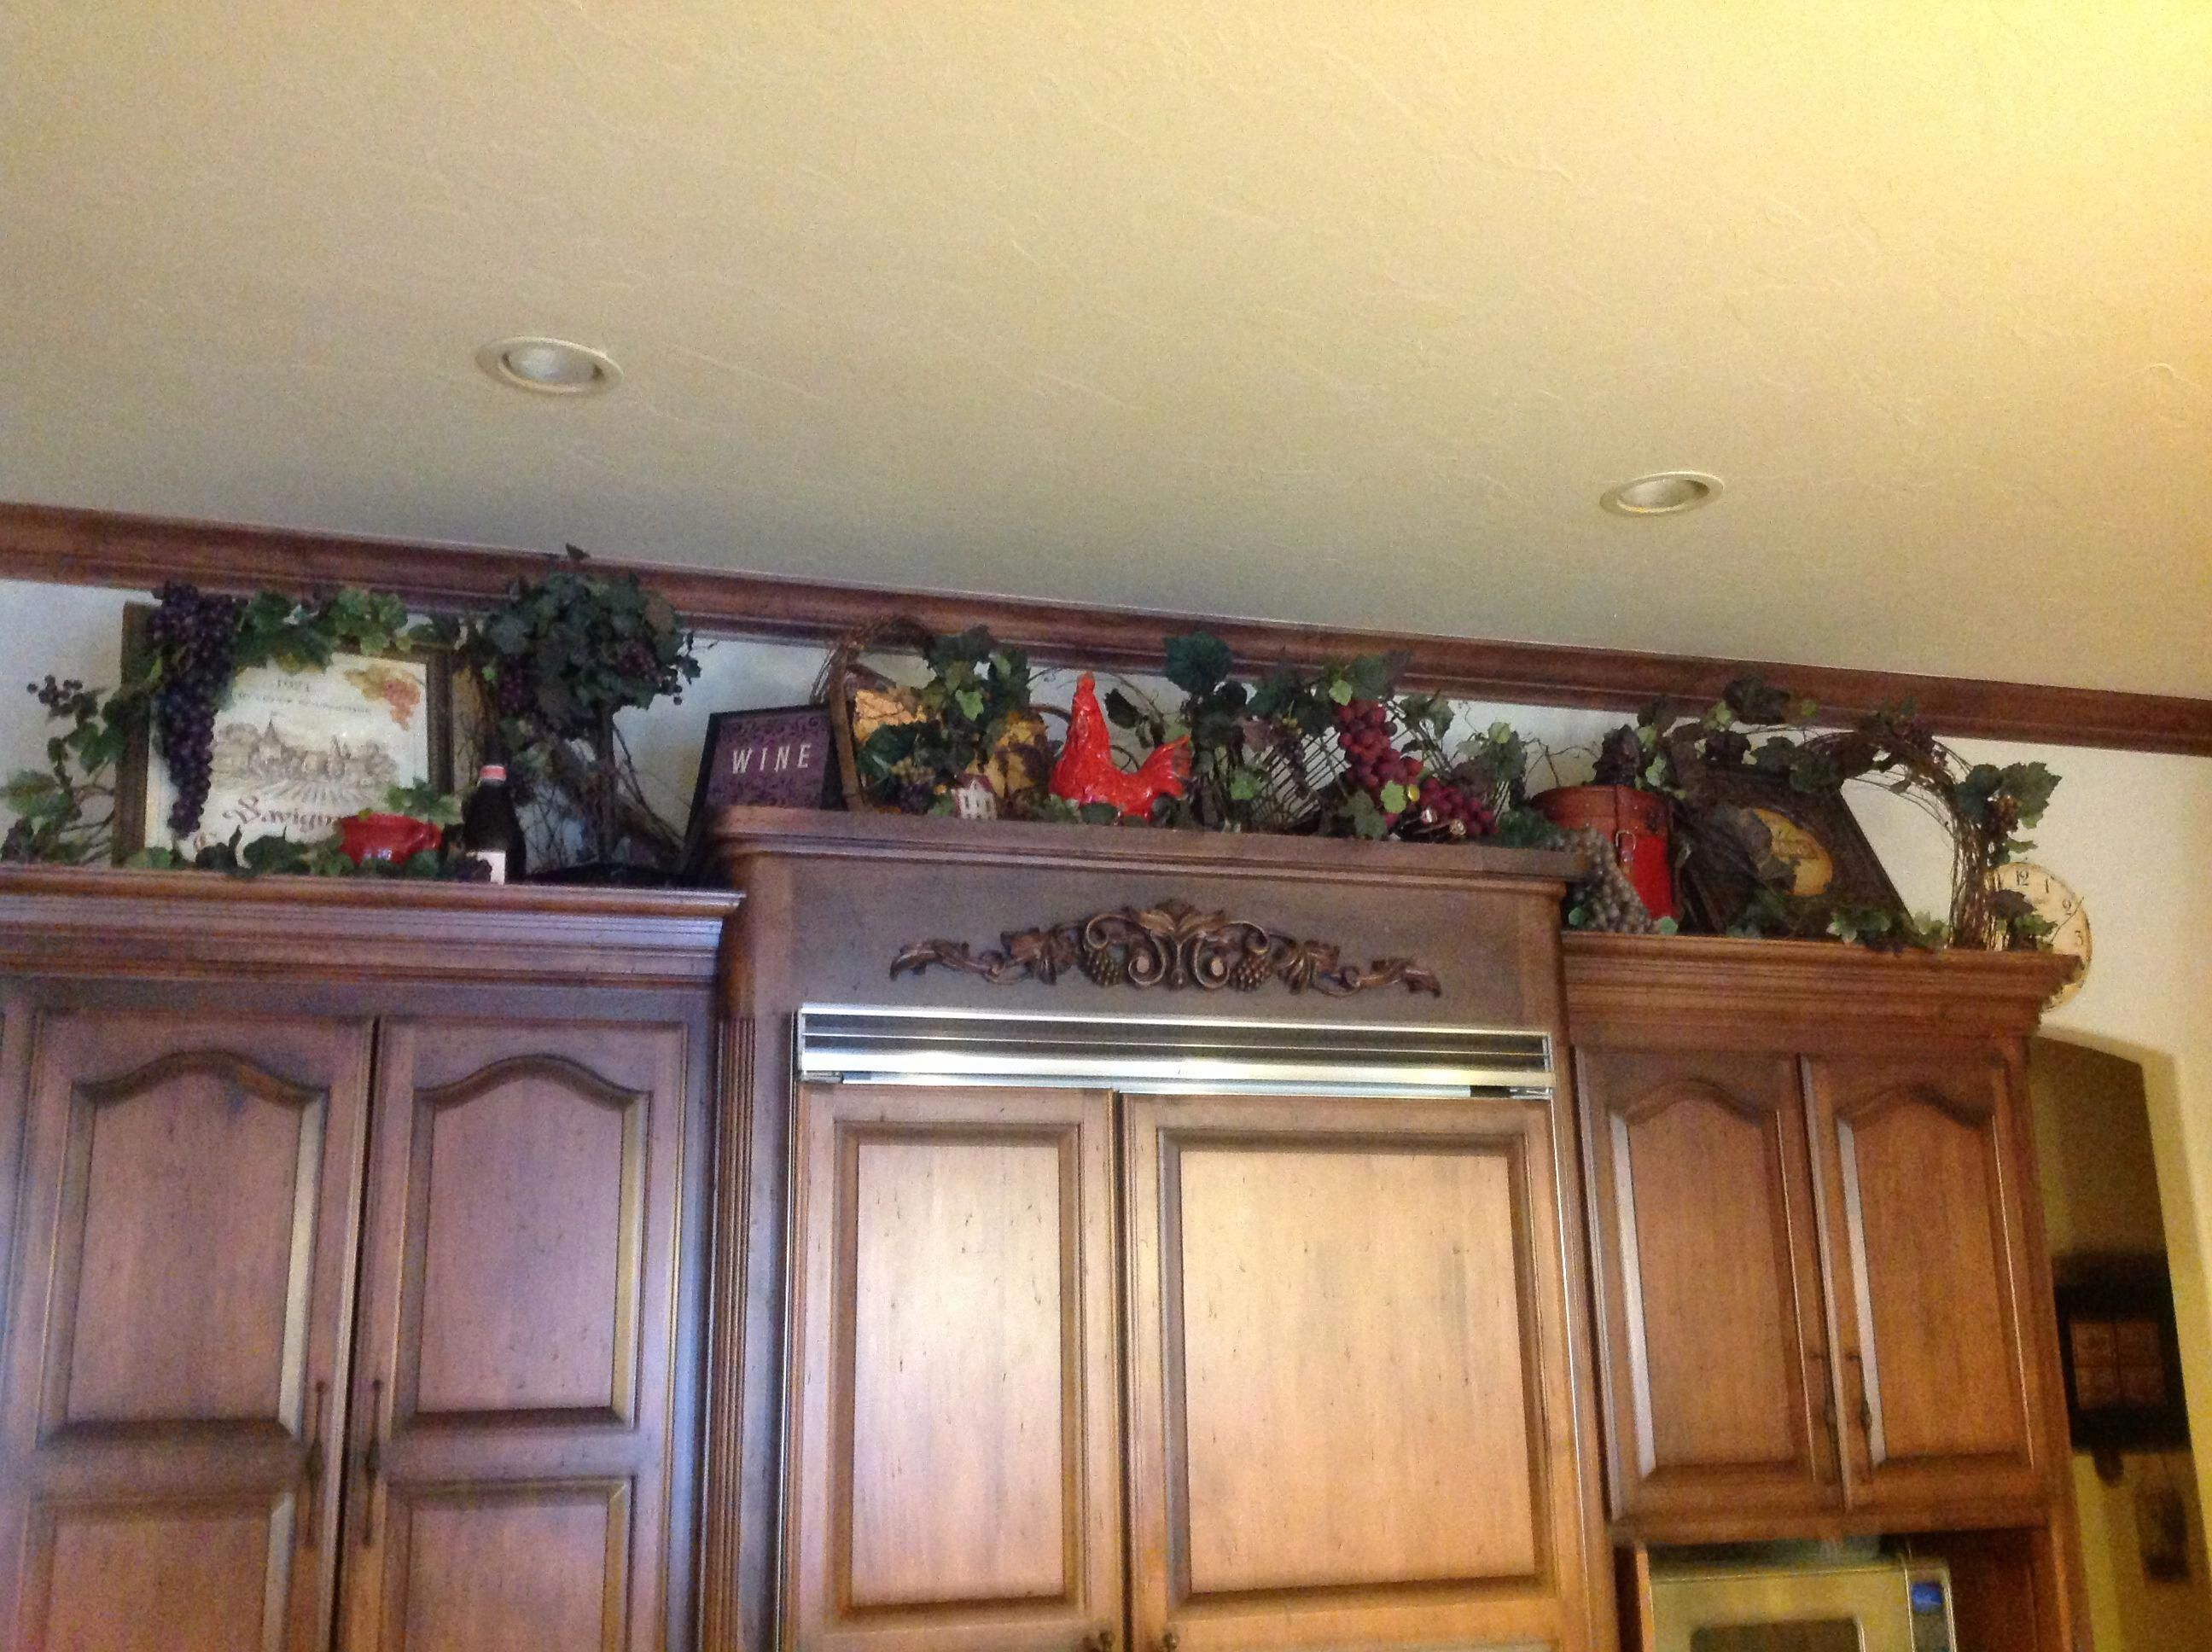 Tuscan decor above cabinets #Tuscandecor #Tuscandesign ... on tuscan kitchen design gallery, tuscan decorating above kitchen cabinets, over kitchen cabinet decorating ideas, tuscan kitchen colors, decorating above kitchen cabinet ideas, tuscan kitchen accessories,